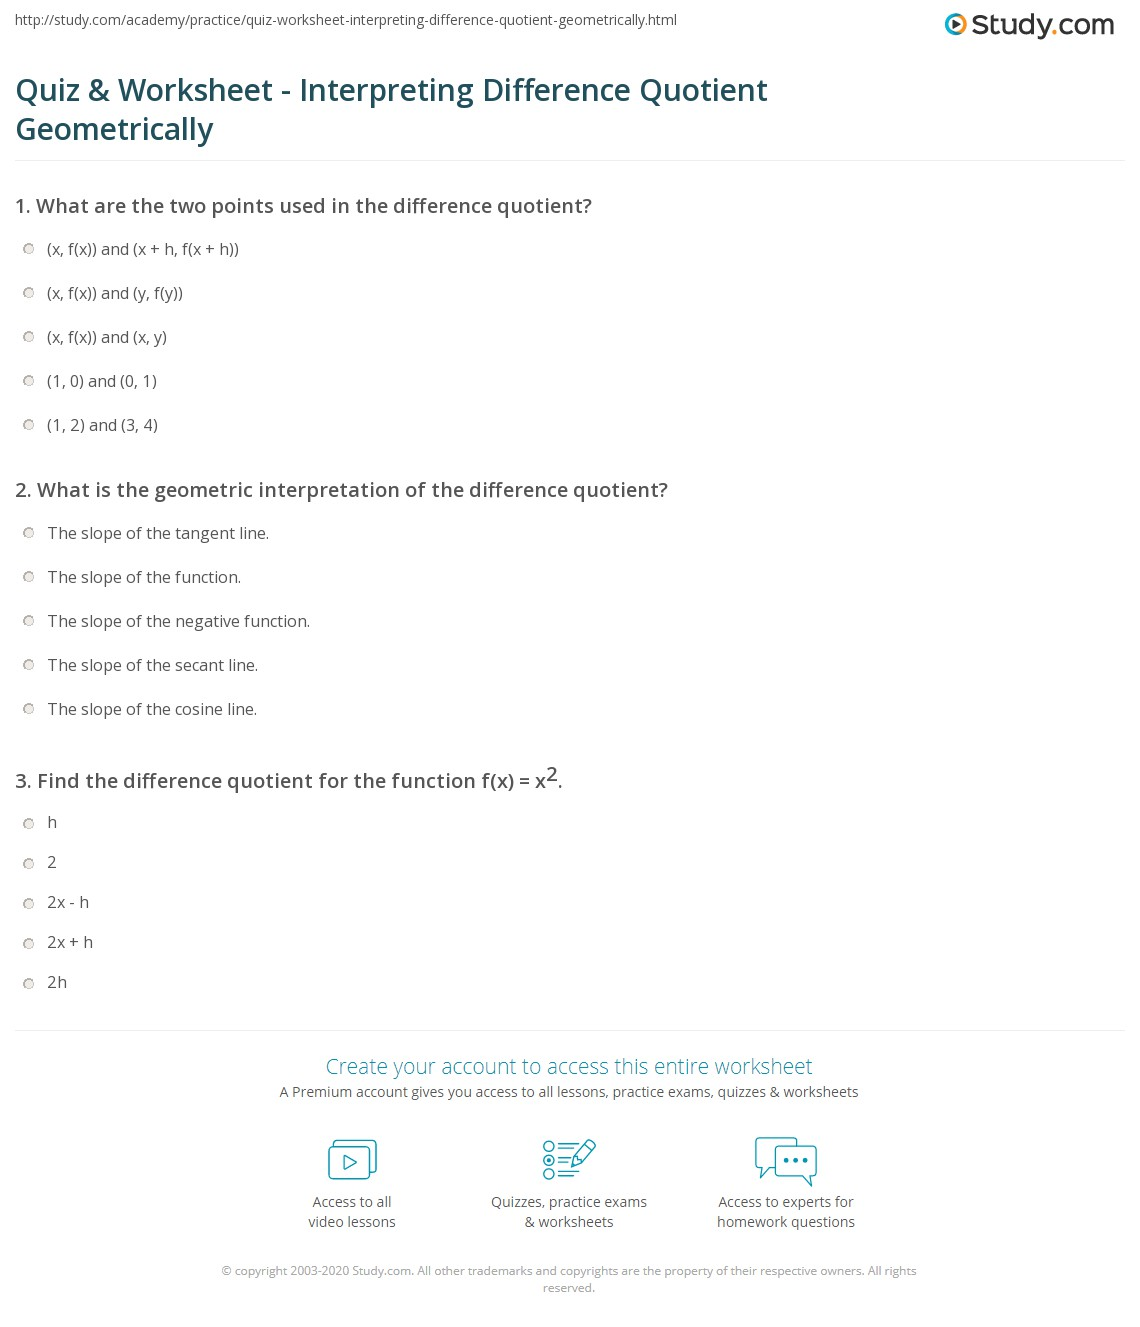 Worksheets Difference Quotient Worksheet quiz worksheet interpreting difference quotient geometrically print the geometric interpretation of worksheet